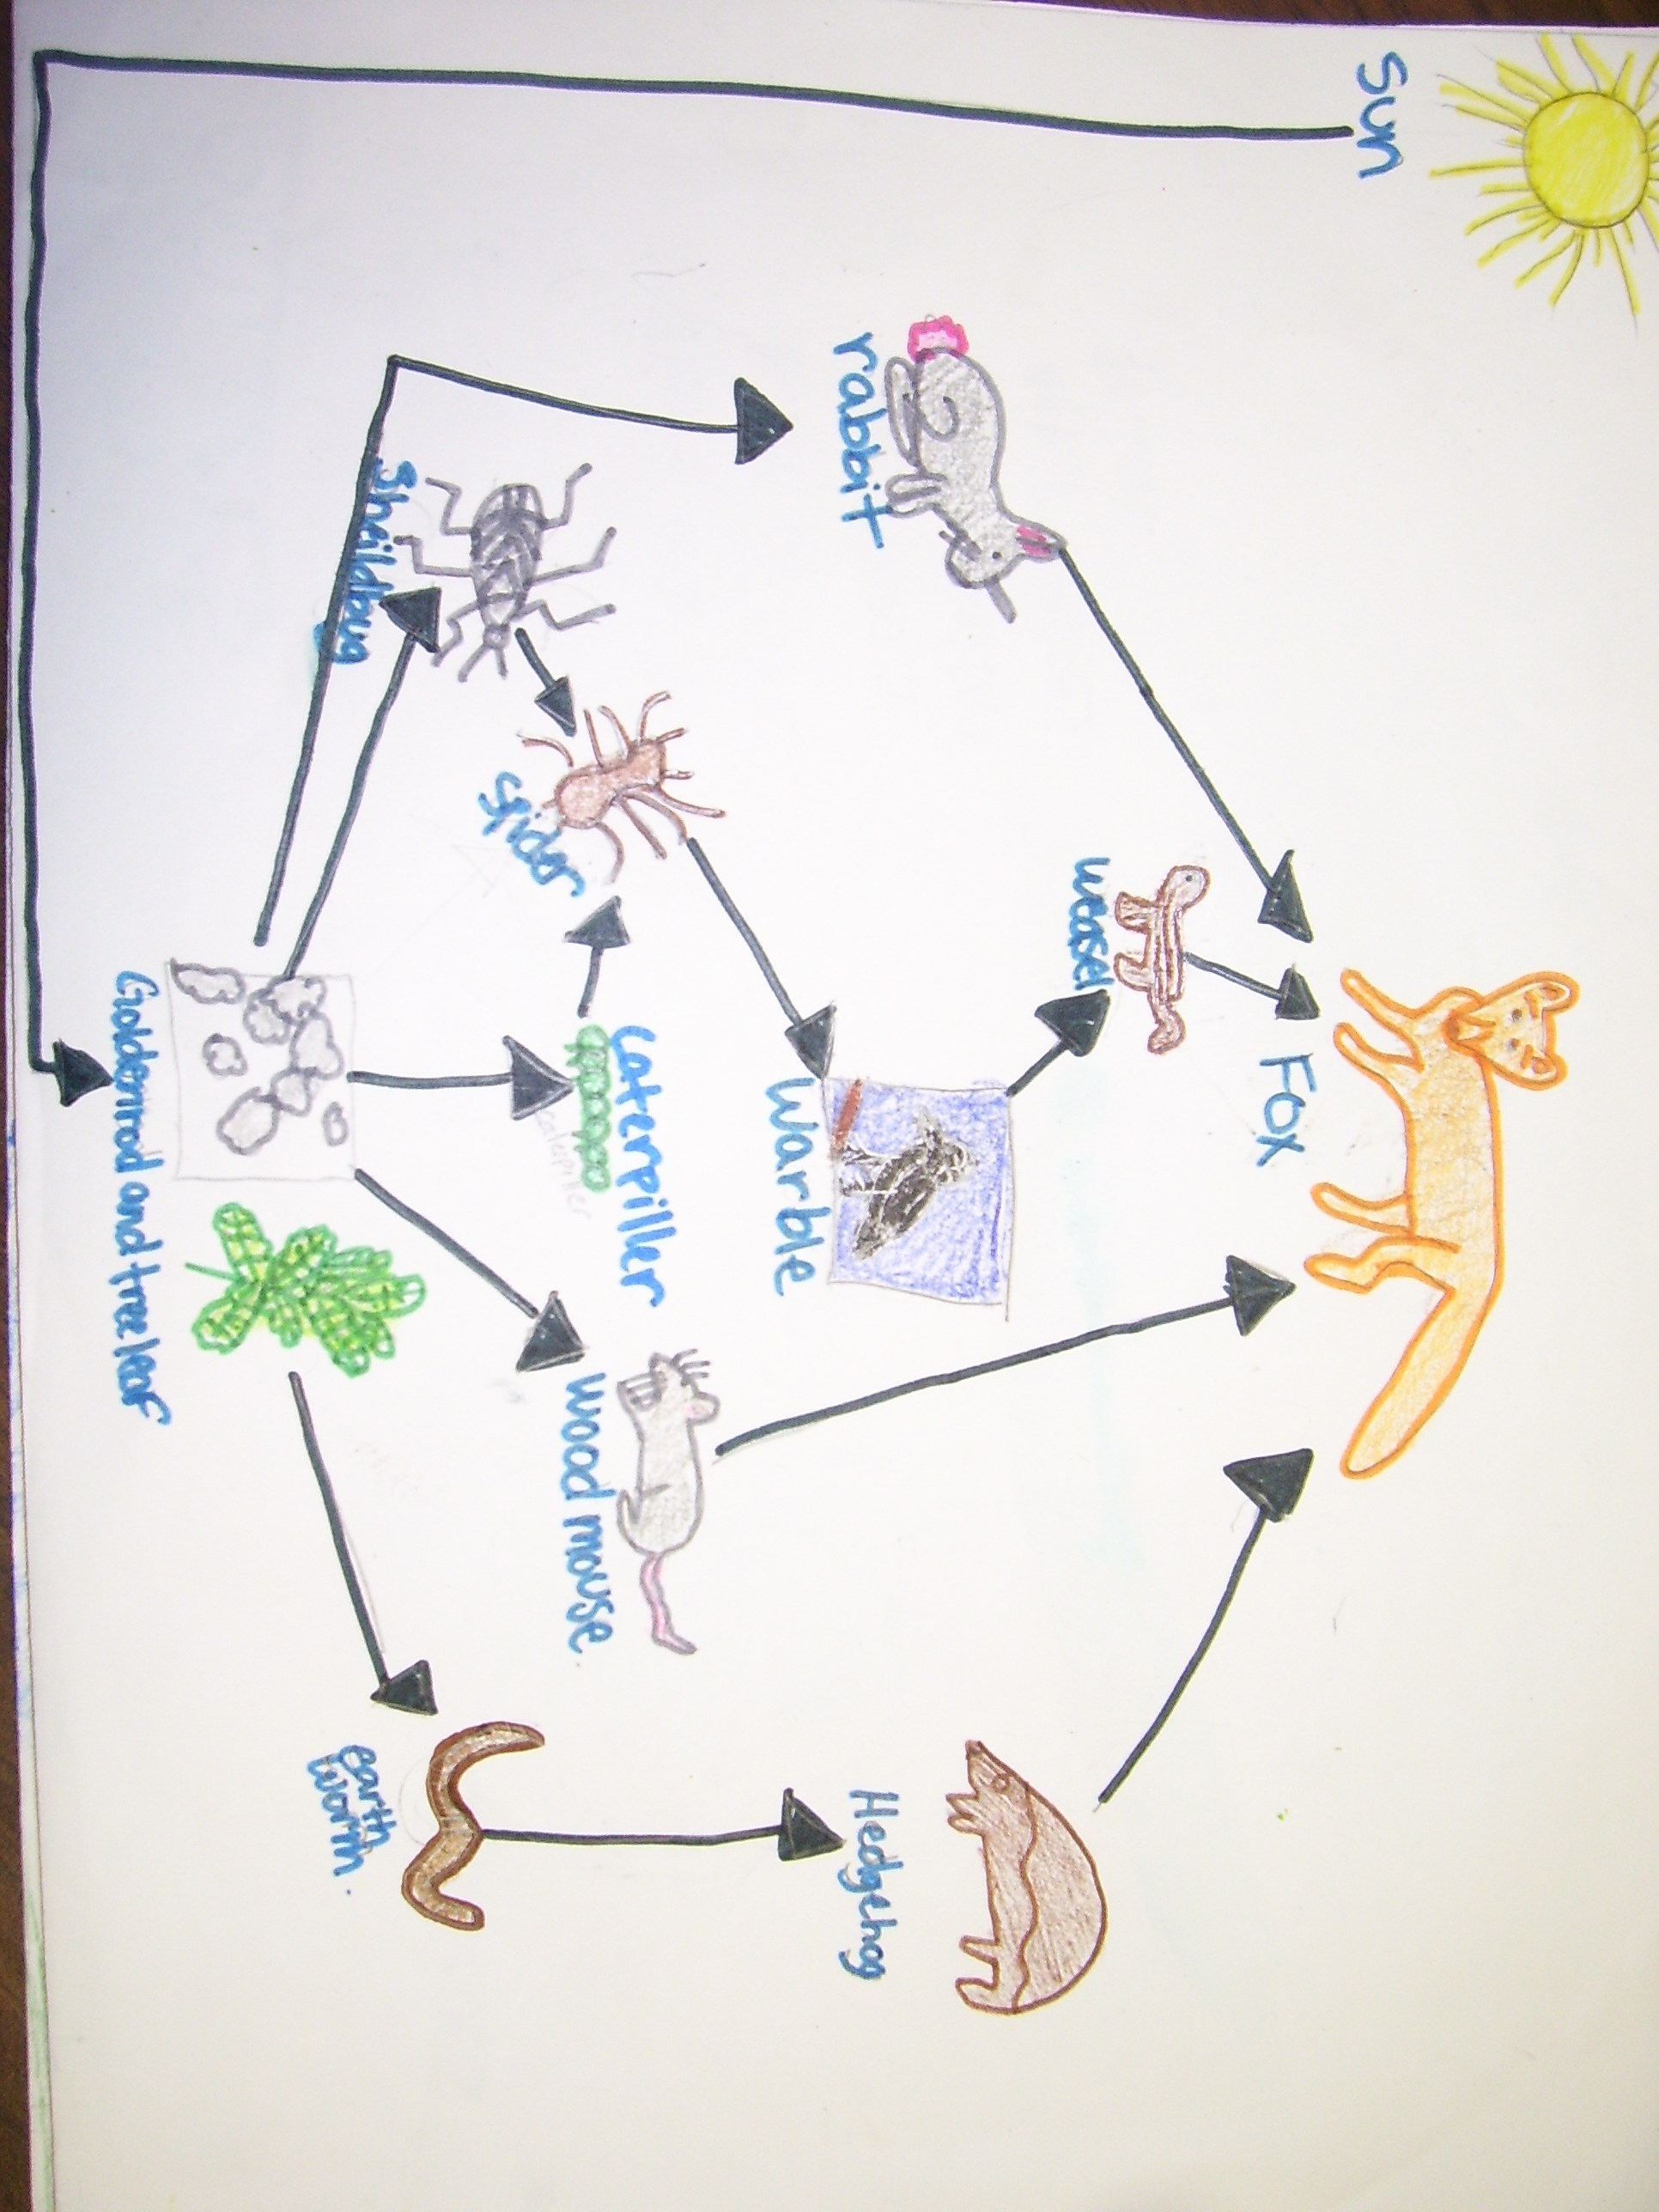 deciduous forest food chain diagram ceiling fan dimmer switch wiring temperate